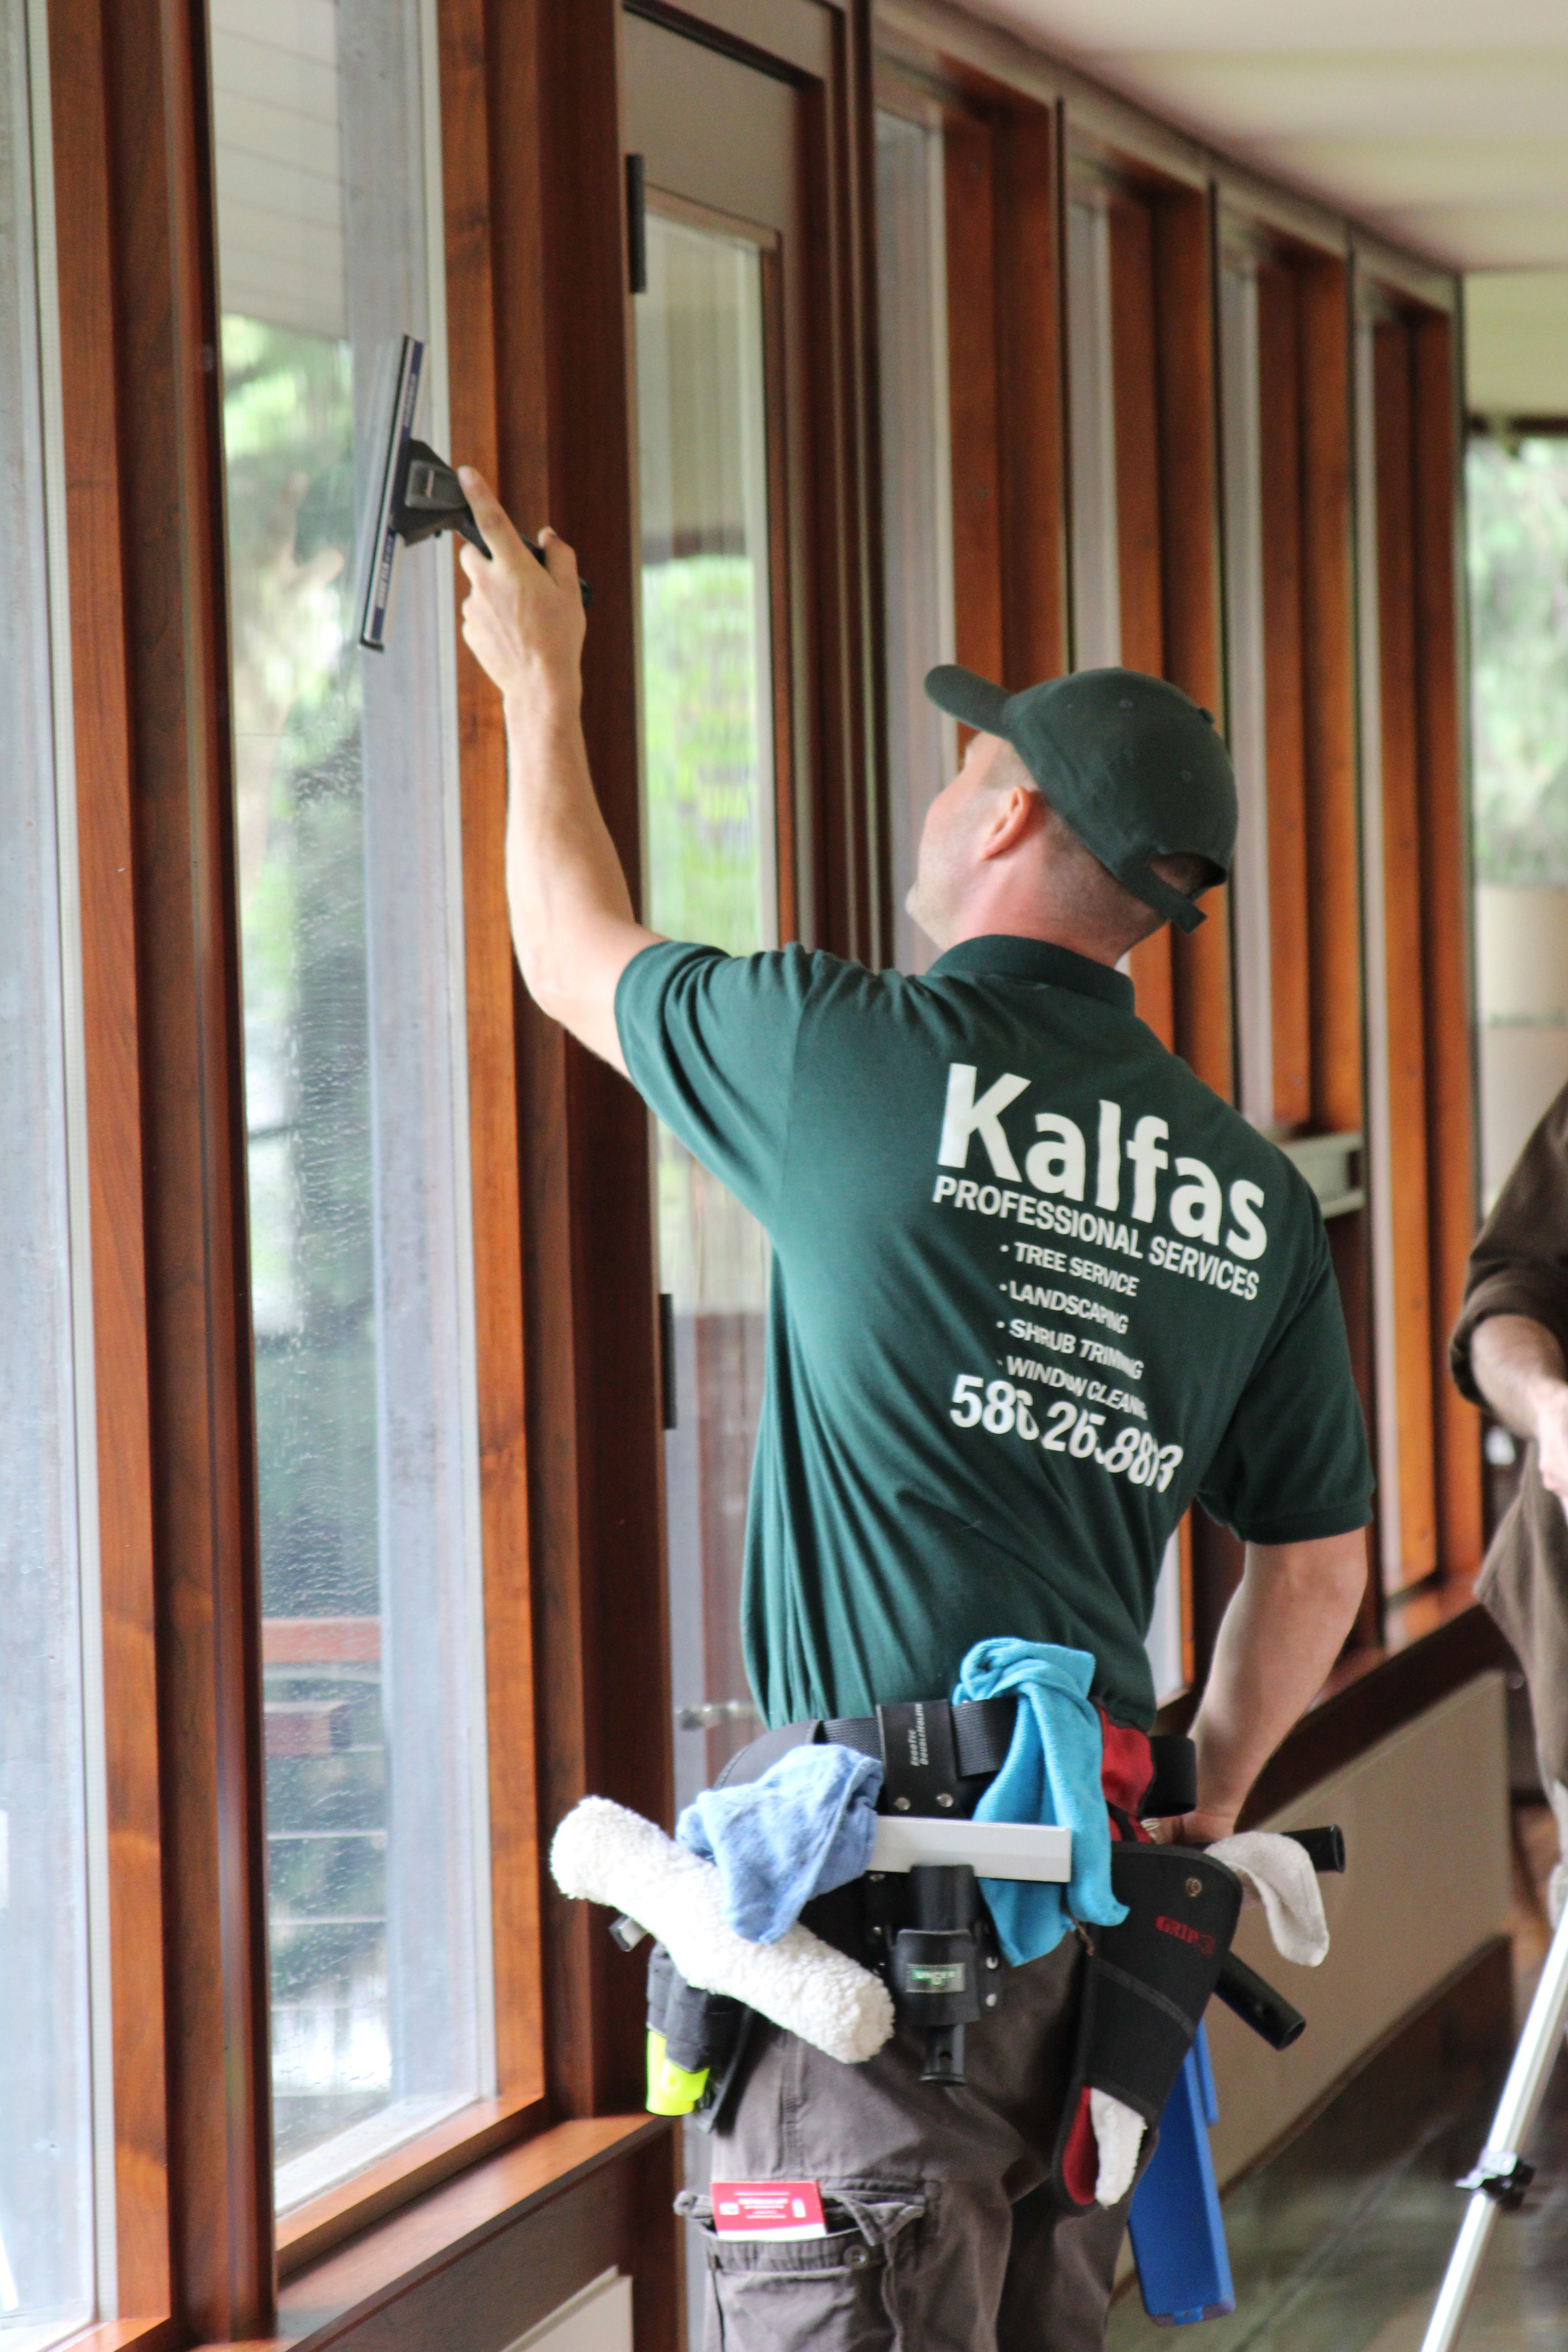 This Would Be Keith Kalfas Owner Of Kalfas Window Cleaning Doing A Window Cleaning Job In Bloomfield Mi Window Cleaner Cleaning Business Bloomfield